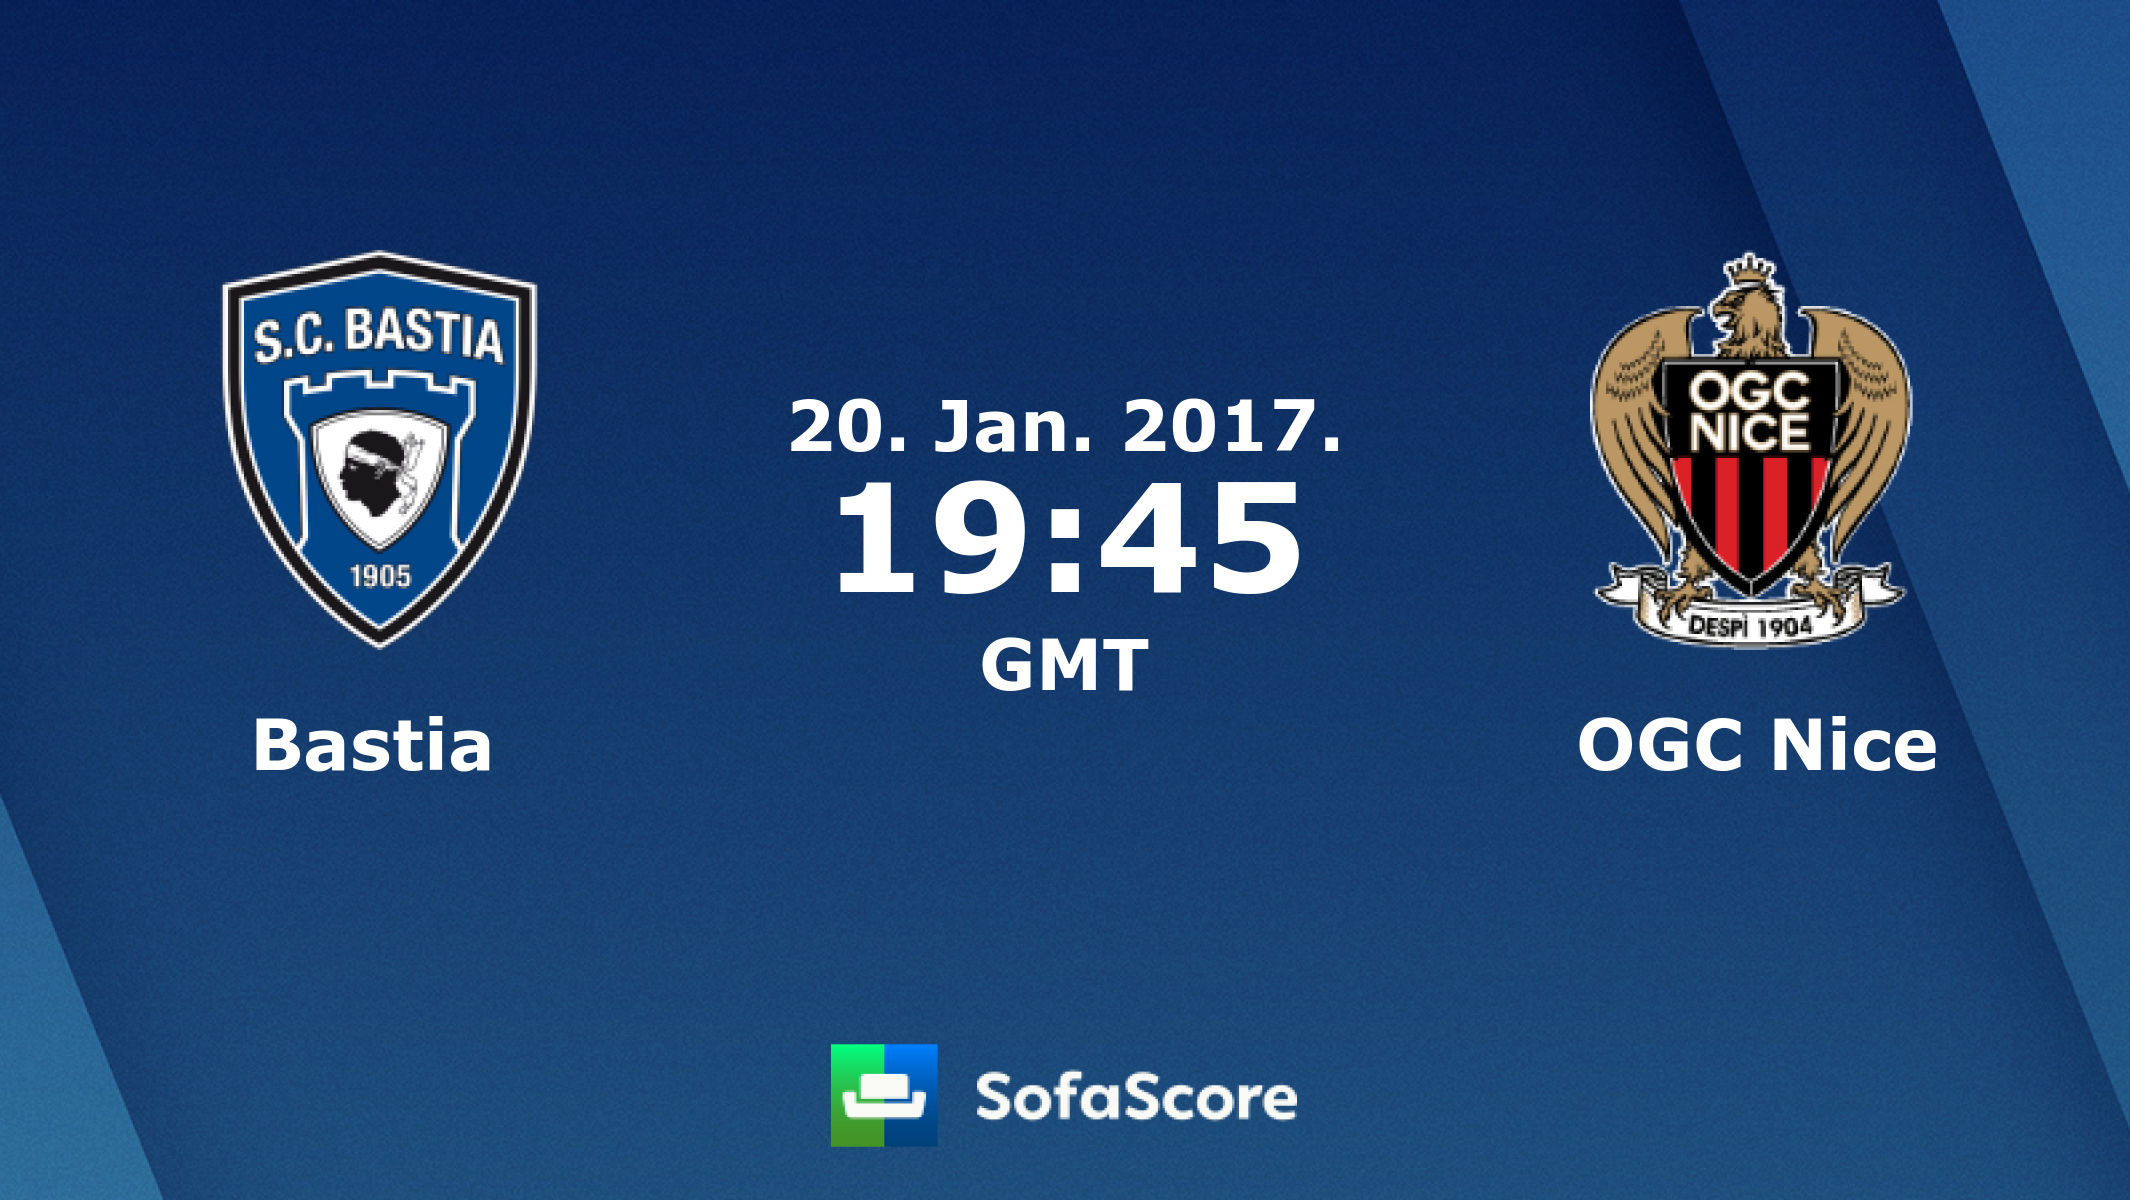 nice bastia sofascore sofa cama nido catalogo ogc live score video stream and h2h results